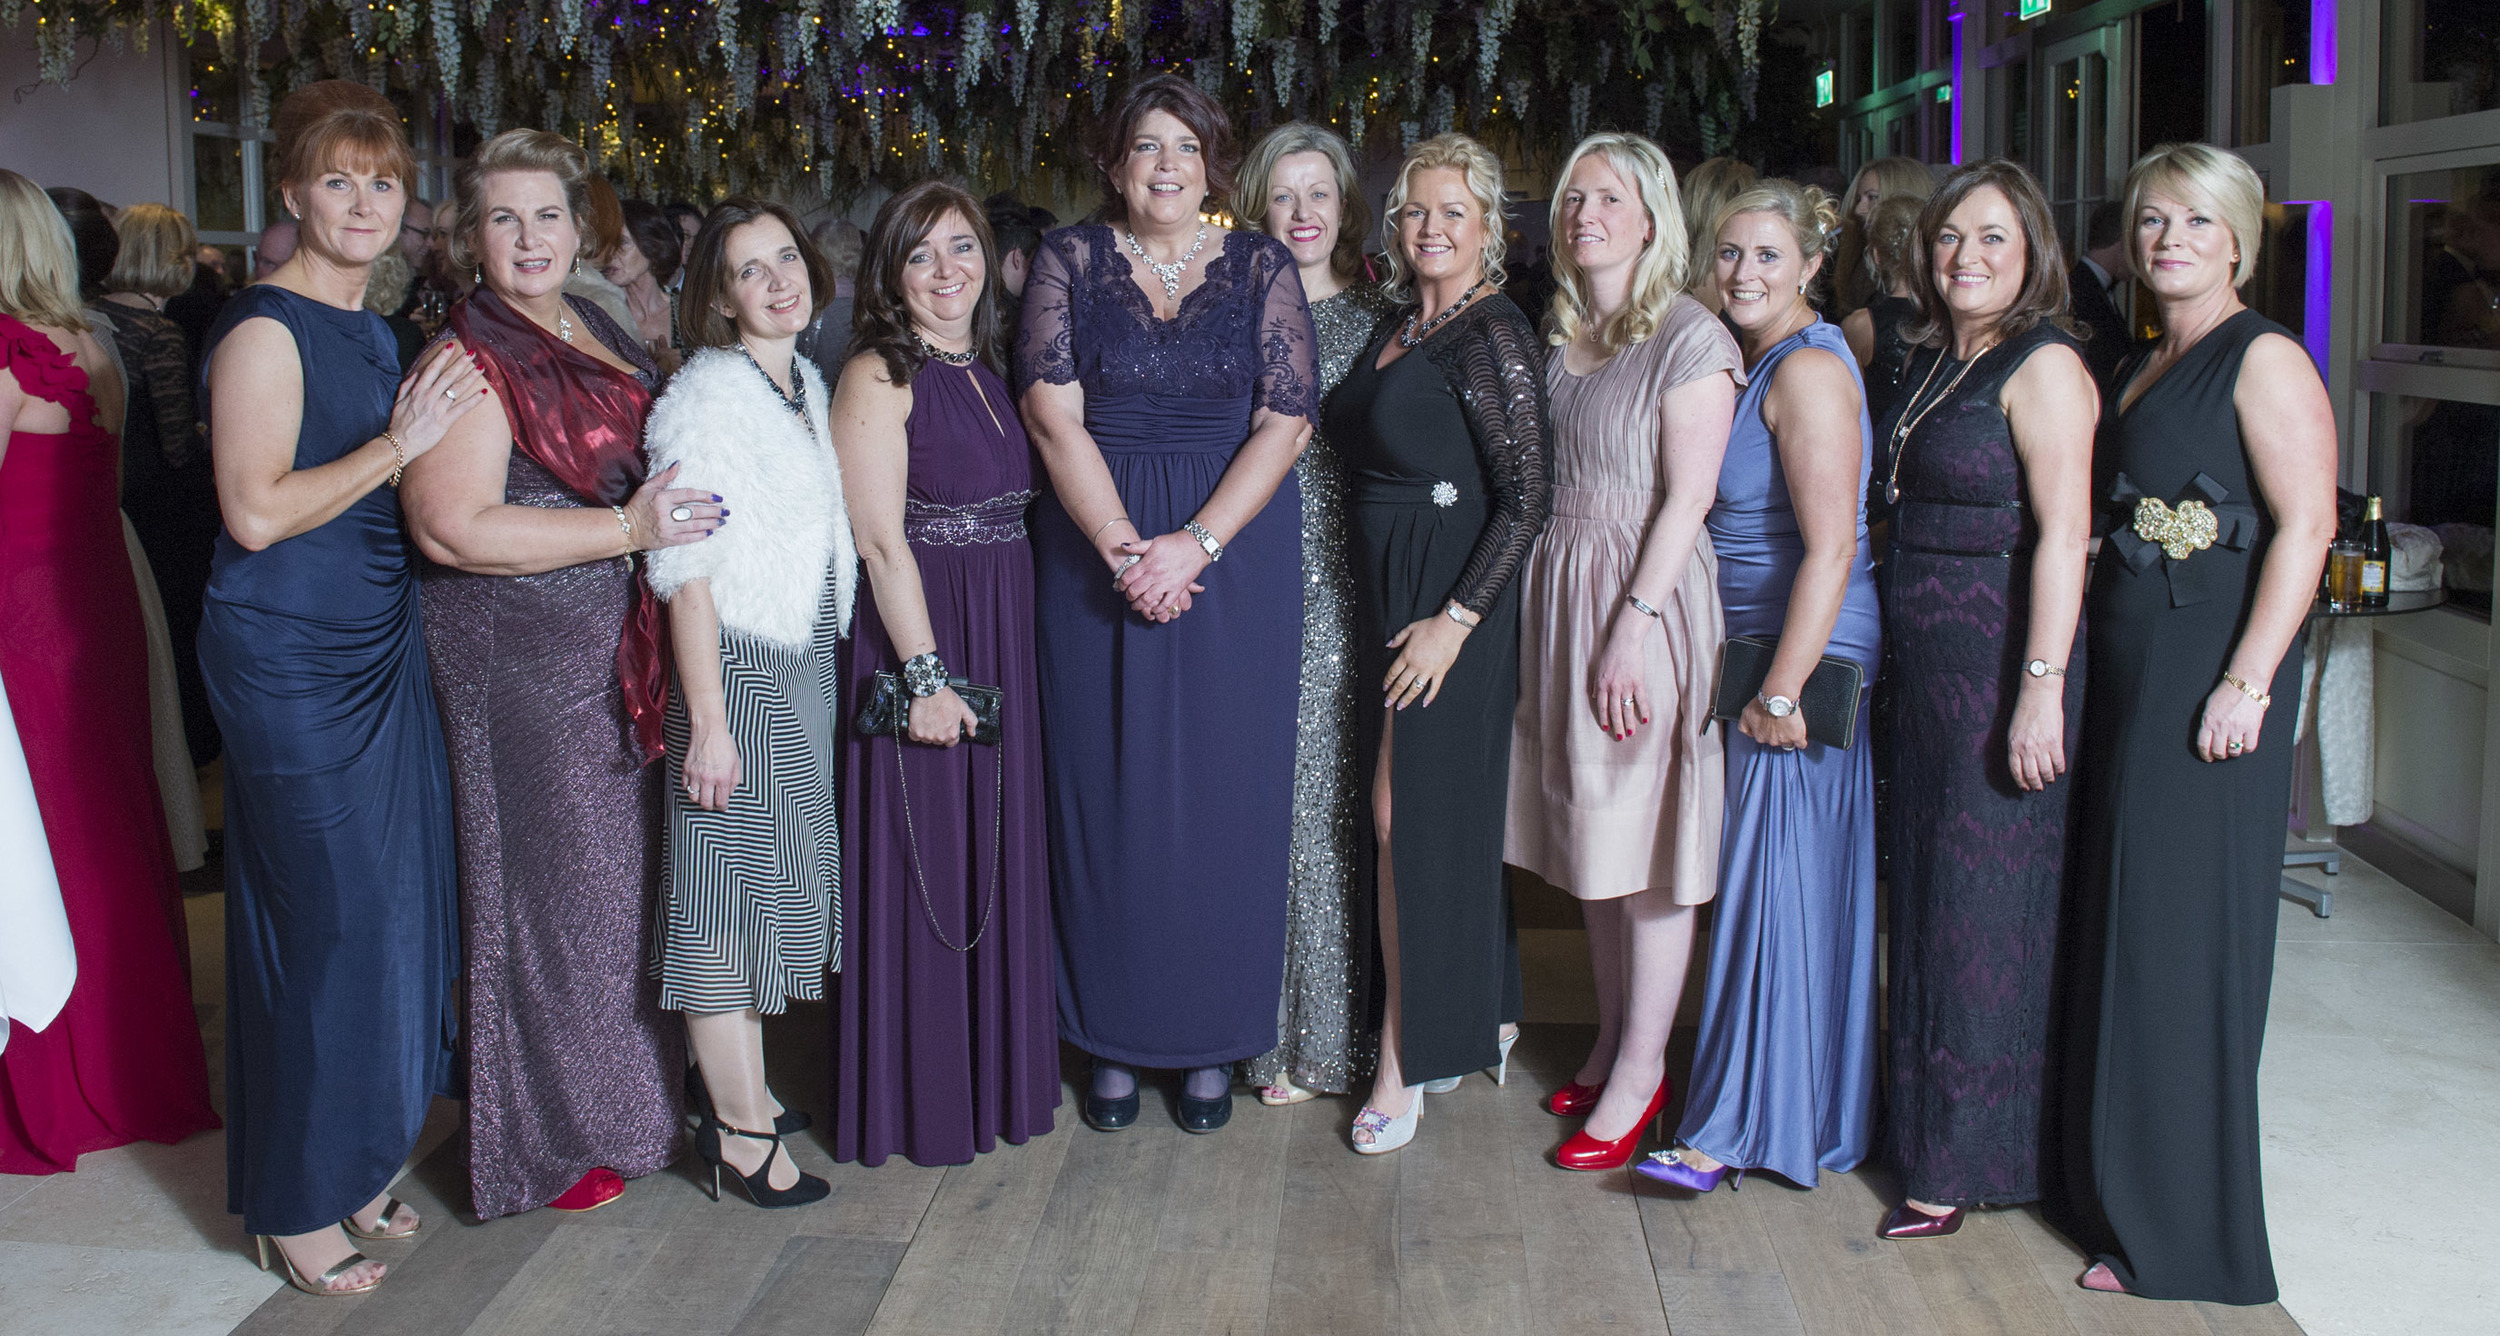 Emma Crowley (centre) and the Emma's Journey Black Tie Ball Committee including  Maria Crowley, Jacqui O'Mahony, Caroline Gibson, Una Crilly,Kate Shalloe and Juliana Moynihan, Siobhan Riordan, Ger White and Caroline Kenefick